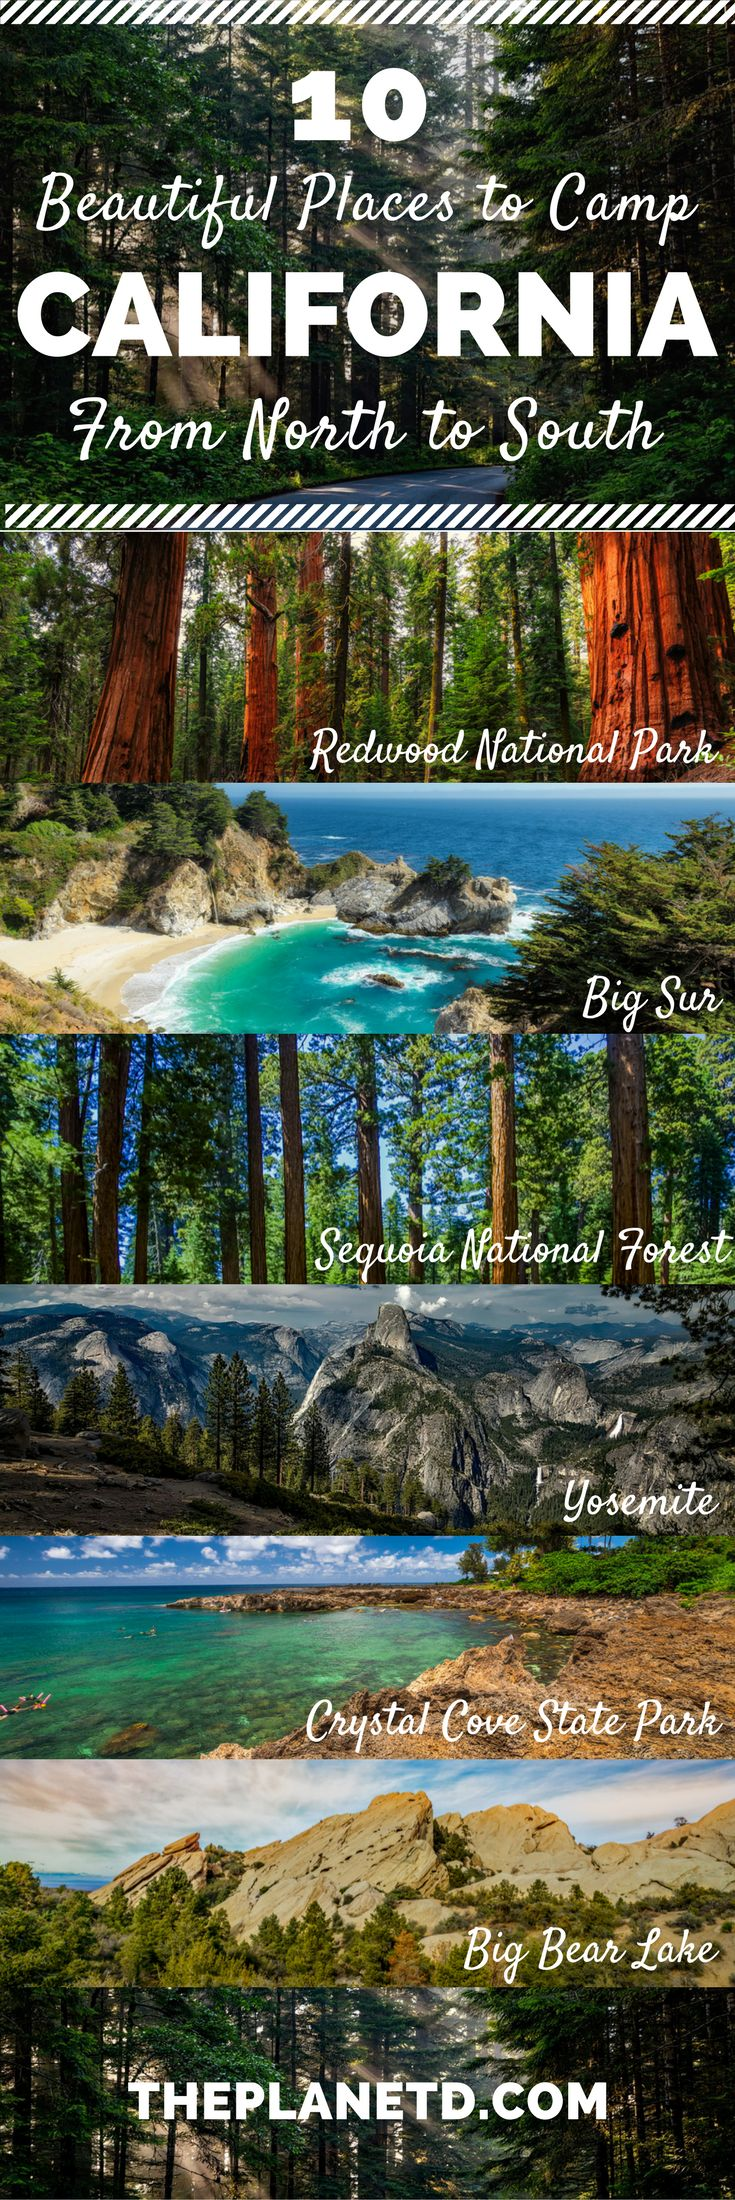 best 25 camping spots ideas on pinterest camping site outdoors